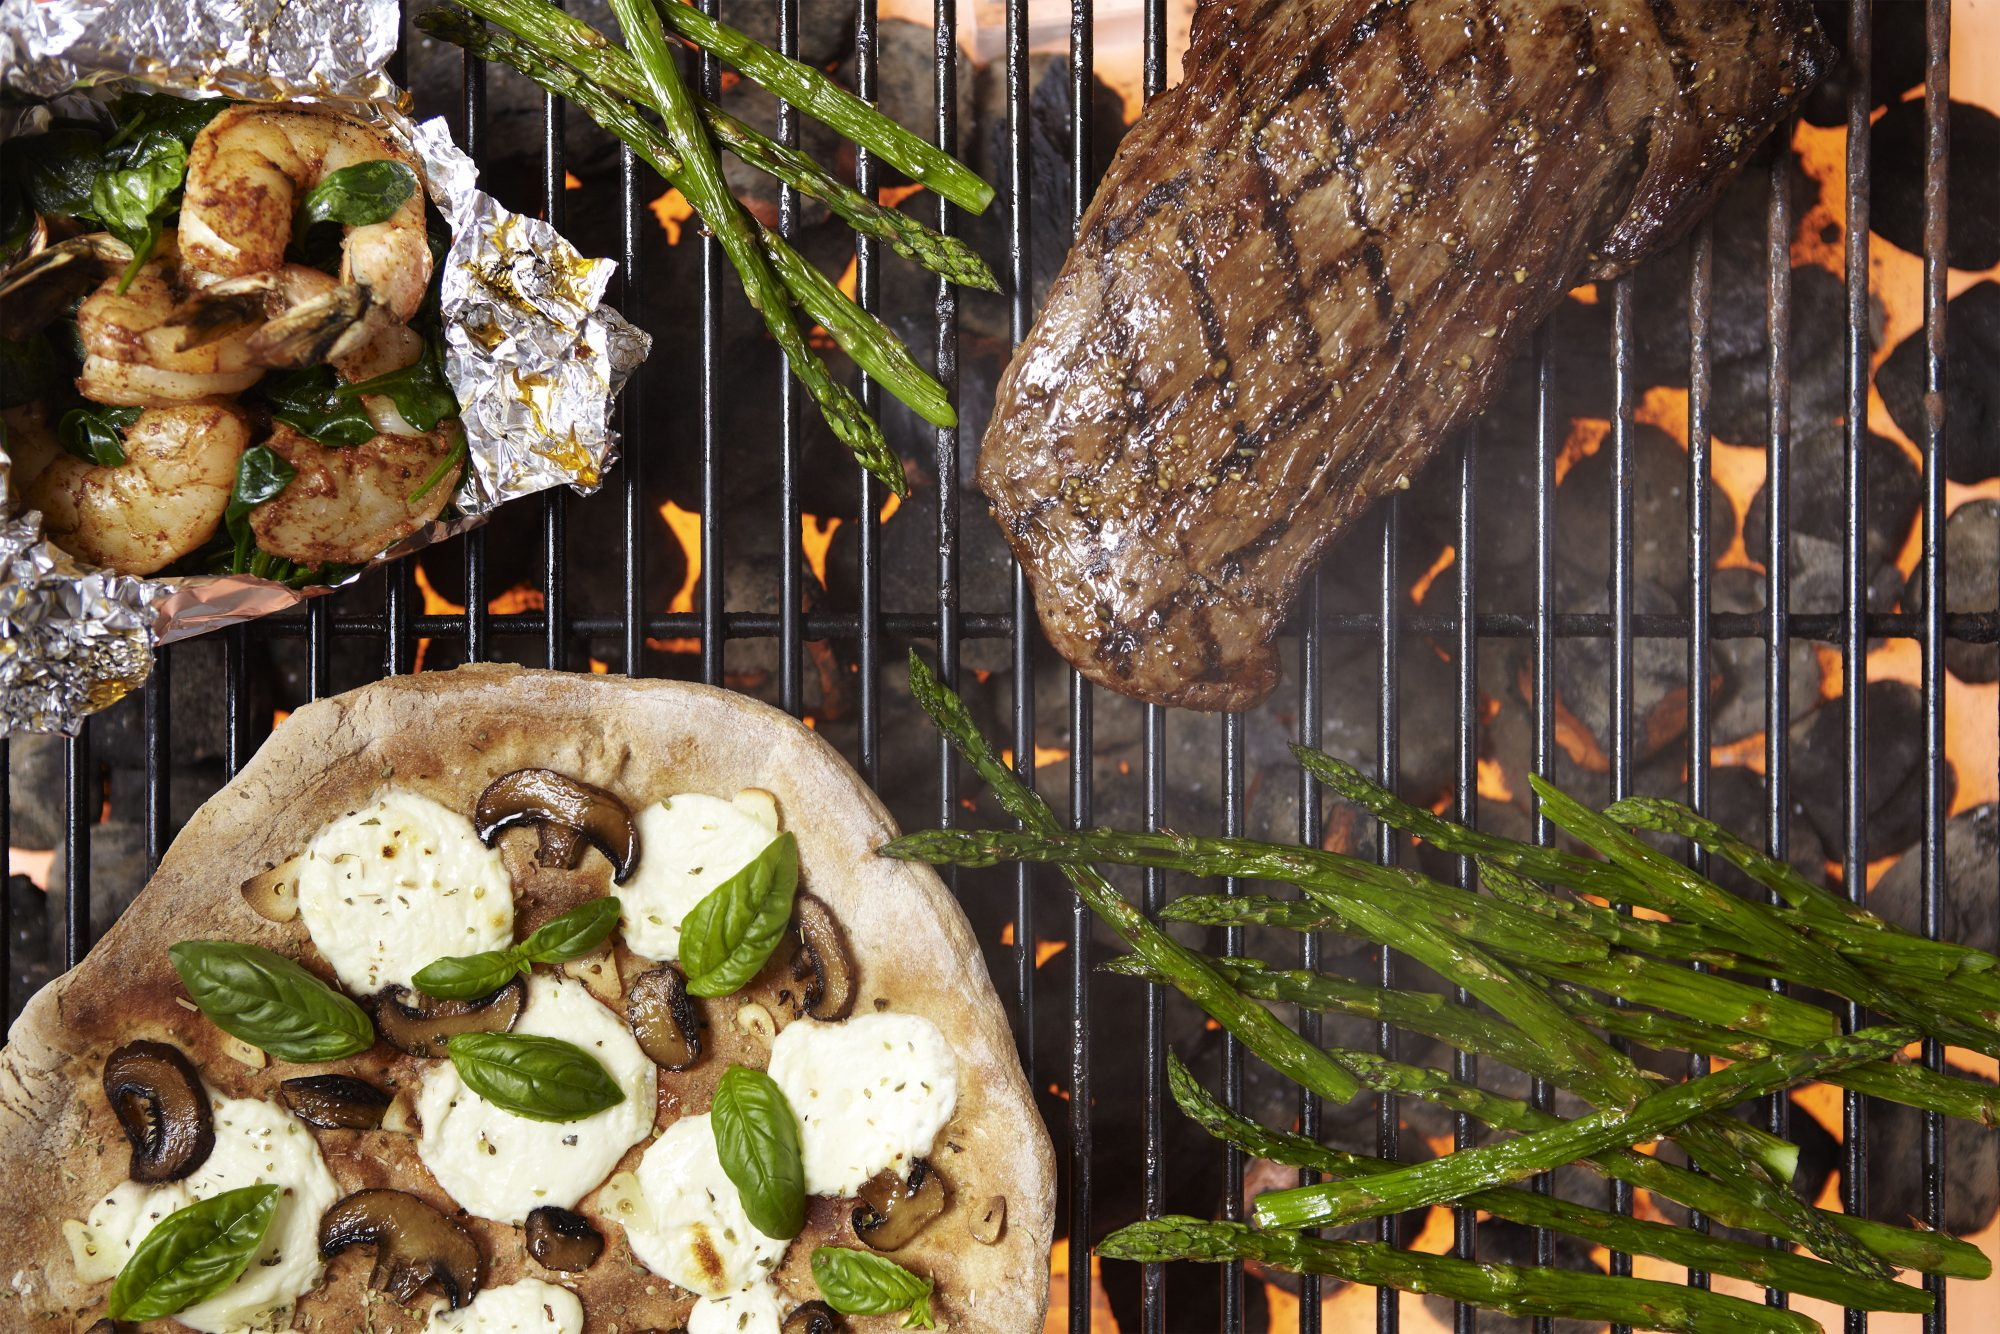 overhead grilling image